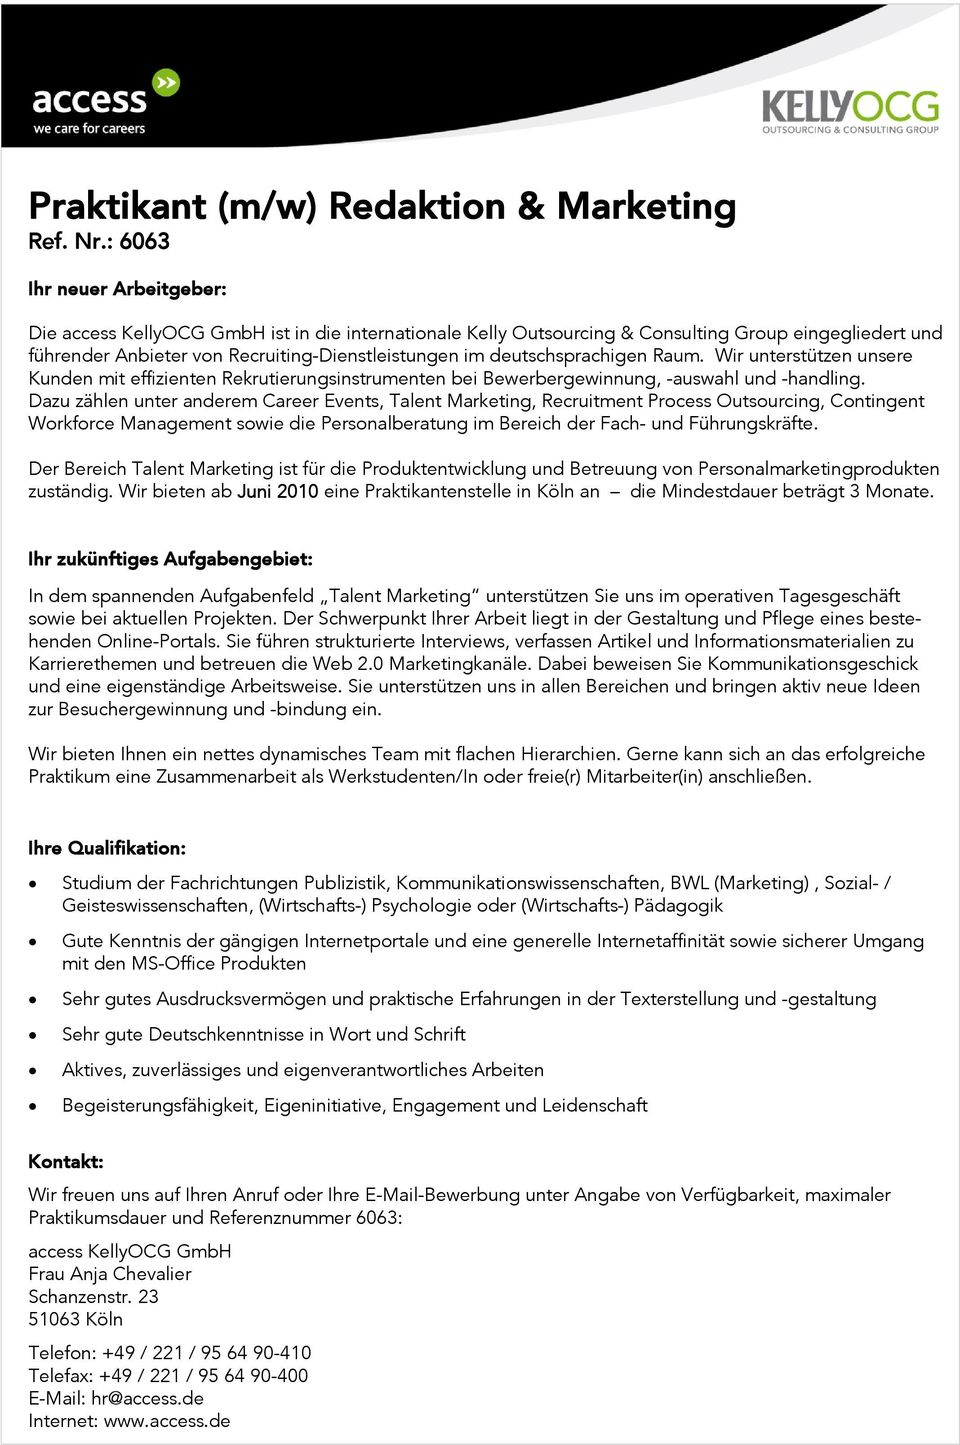 Wir unterstützen unsere Dazu zählen unter anderem Career Events, Talent Marketing, Recruitment Process Outsourcing, Contingent Workforce Management sowie die Personalberatung im Bereich der Fach- und